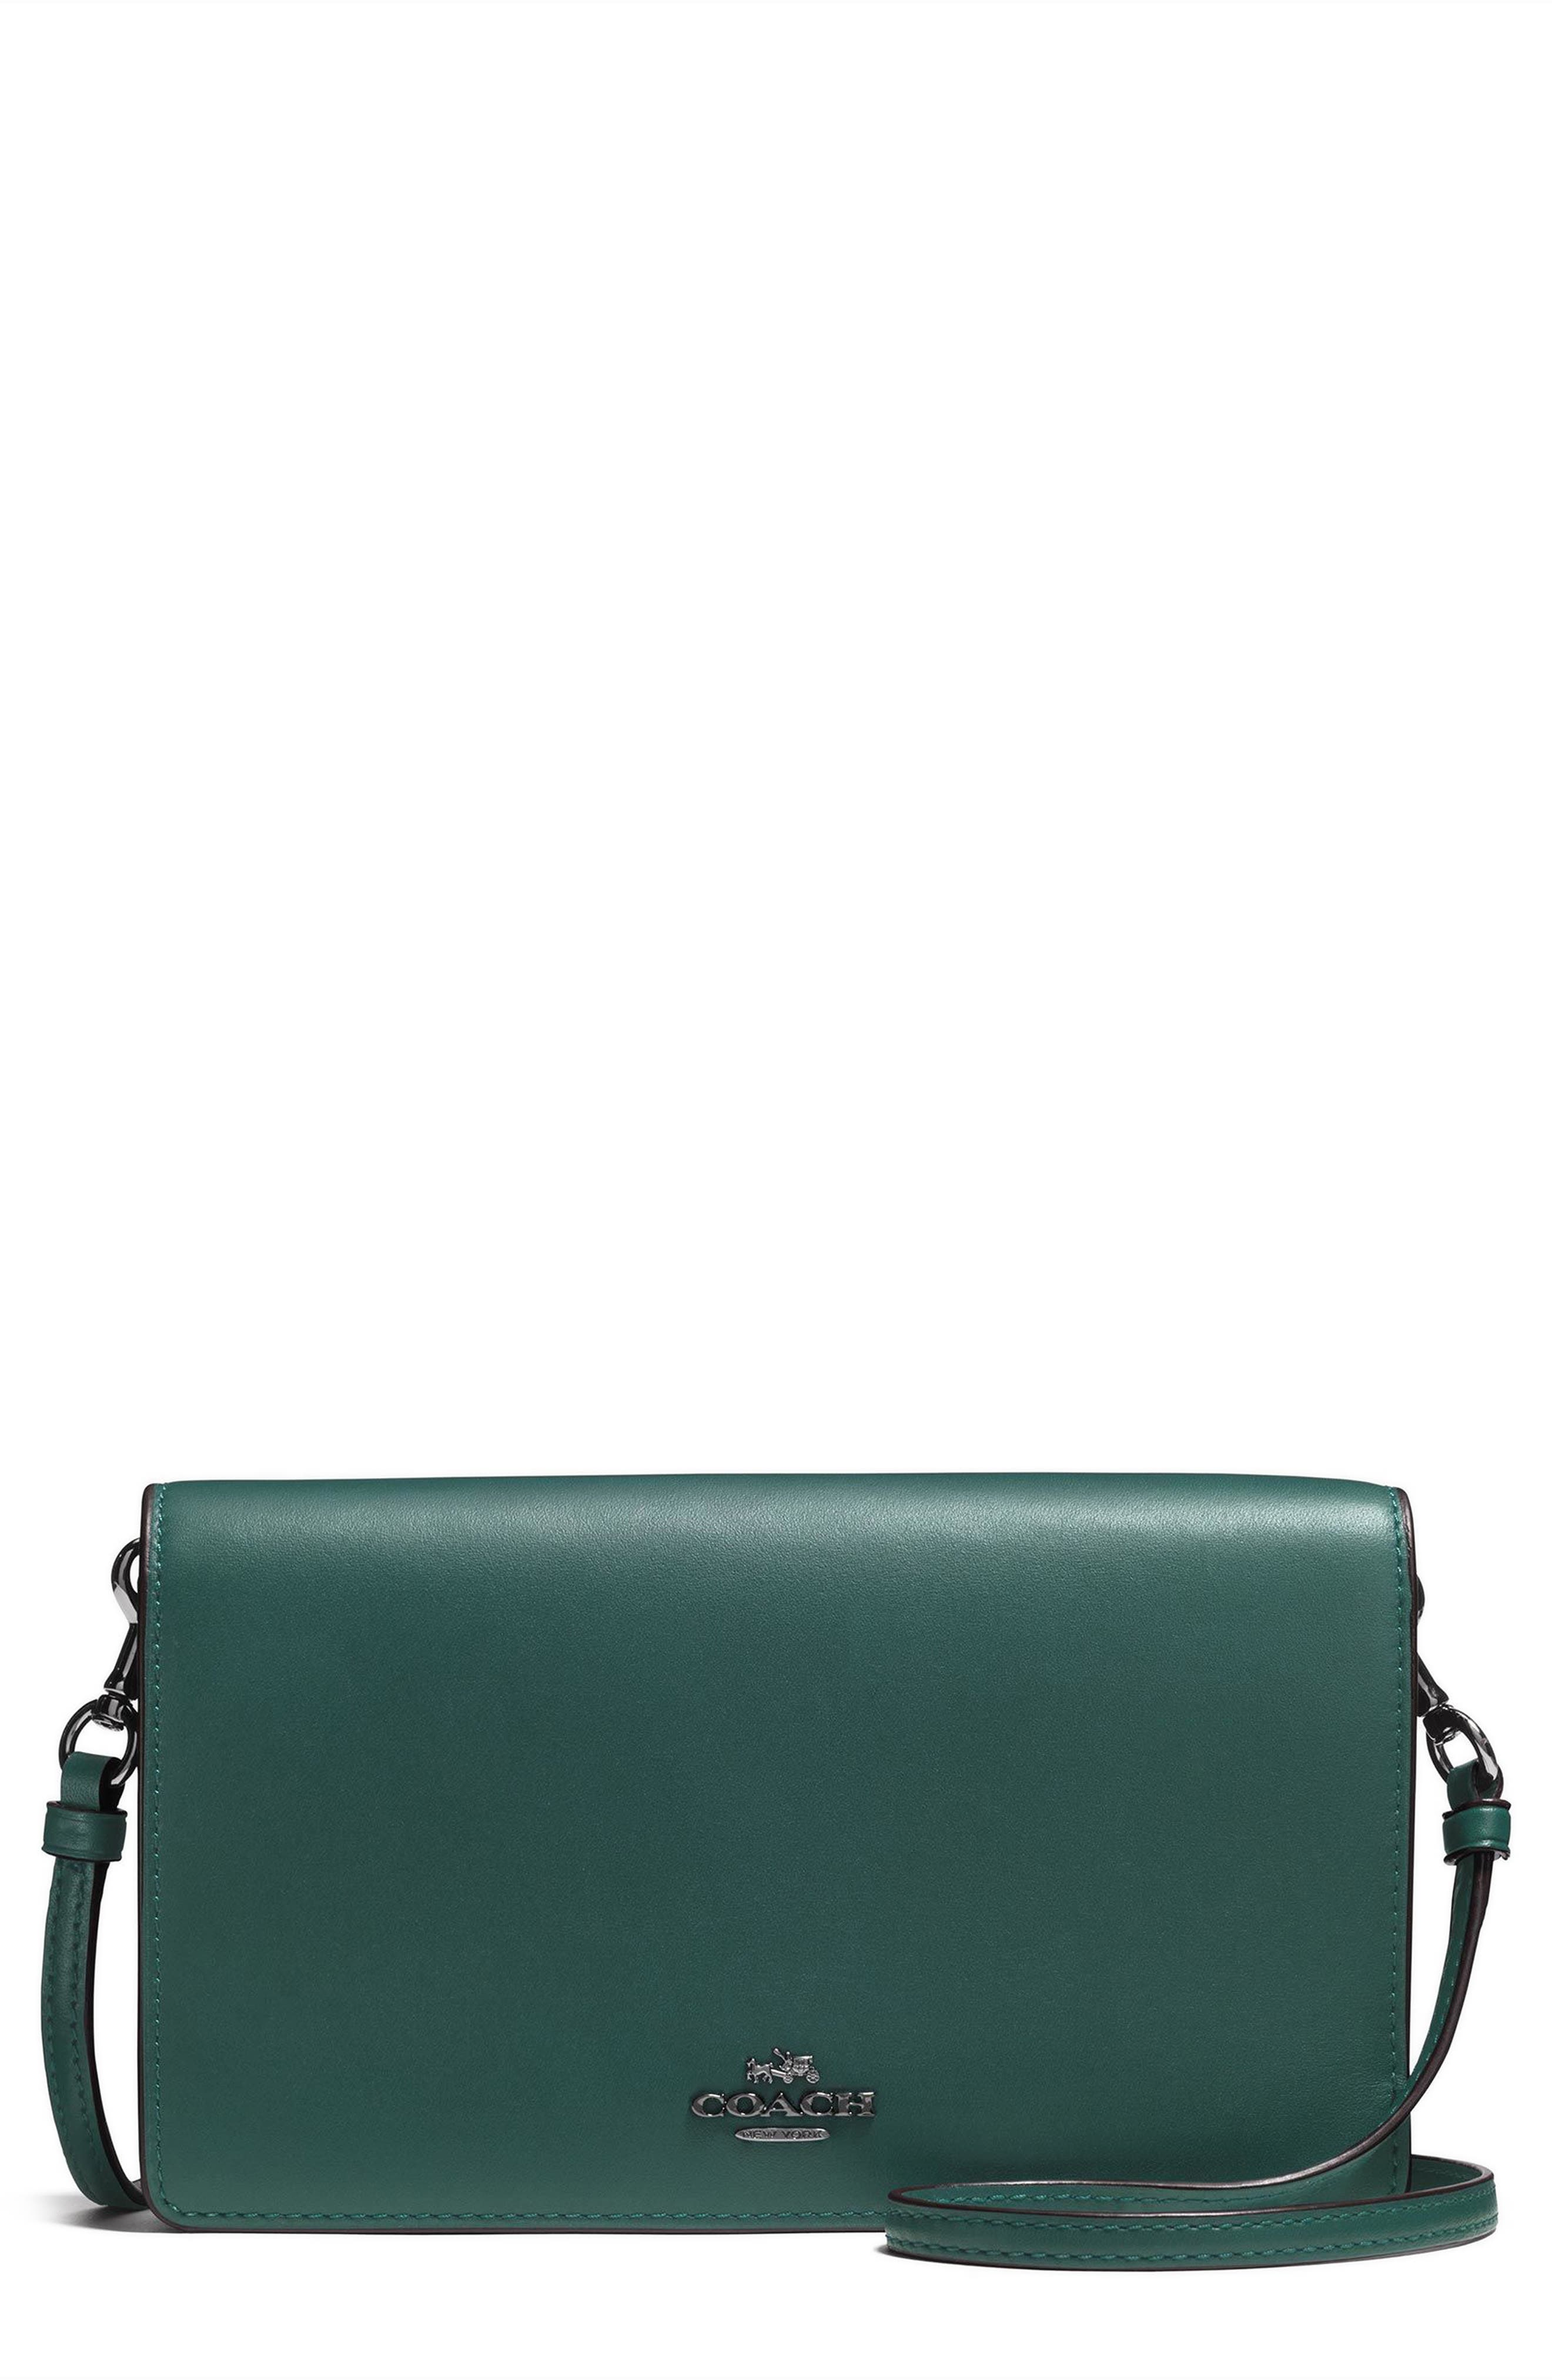 Calfskin Leather Foldover Convertible Clutch,                         Main,                         color, Dark Turquoise